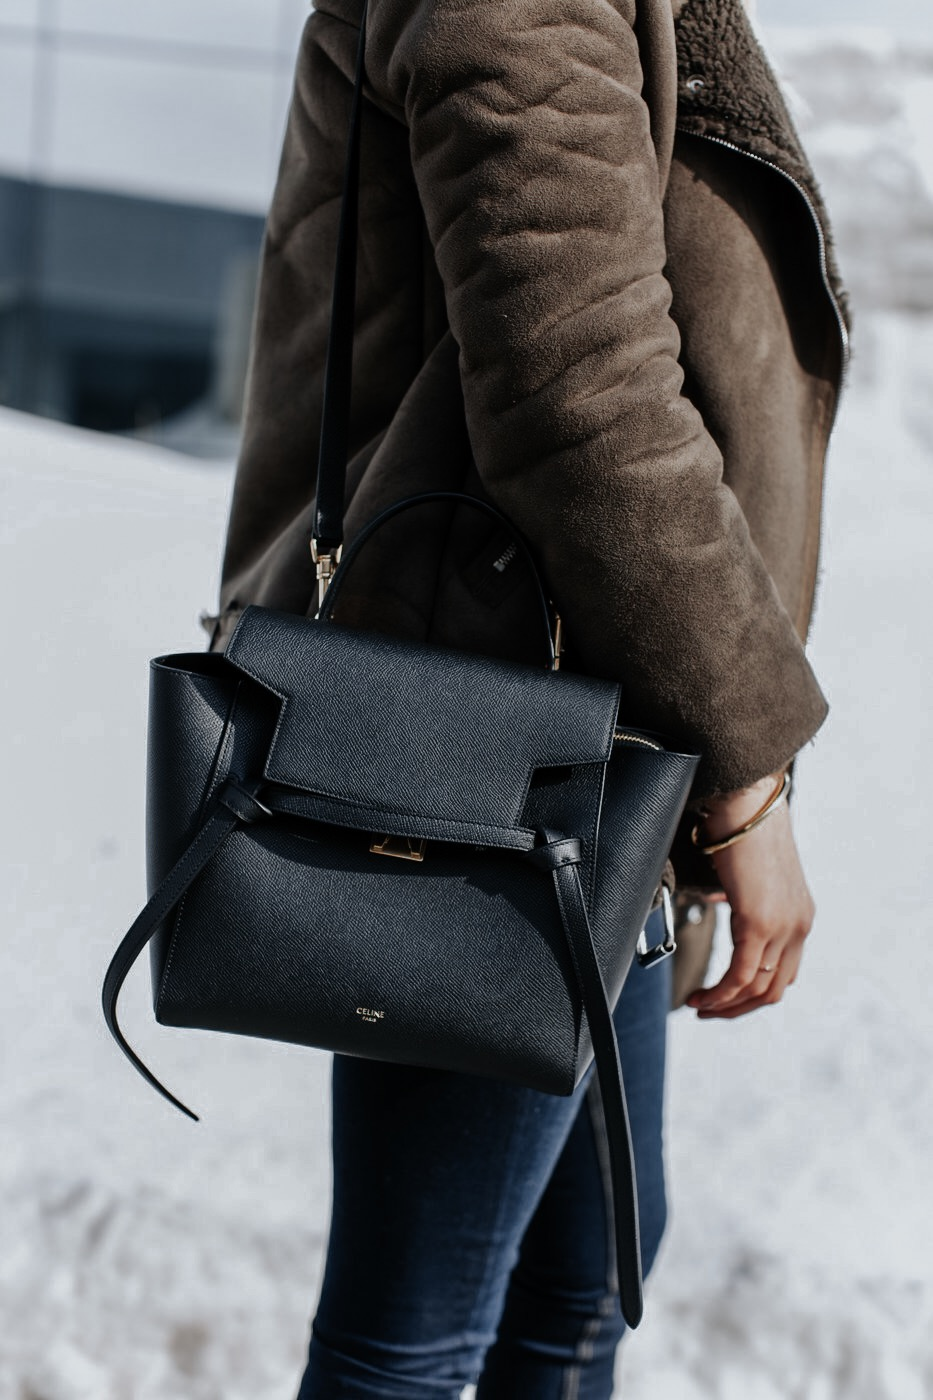 Celine Micro Belt Bag Black Life With Aco Life With A Co By Amanda L Conquer